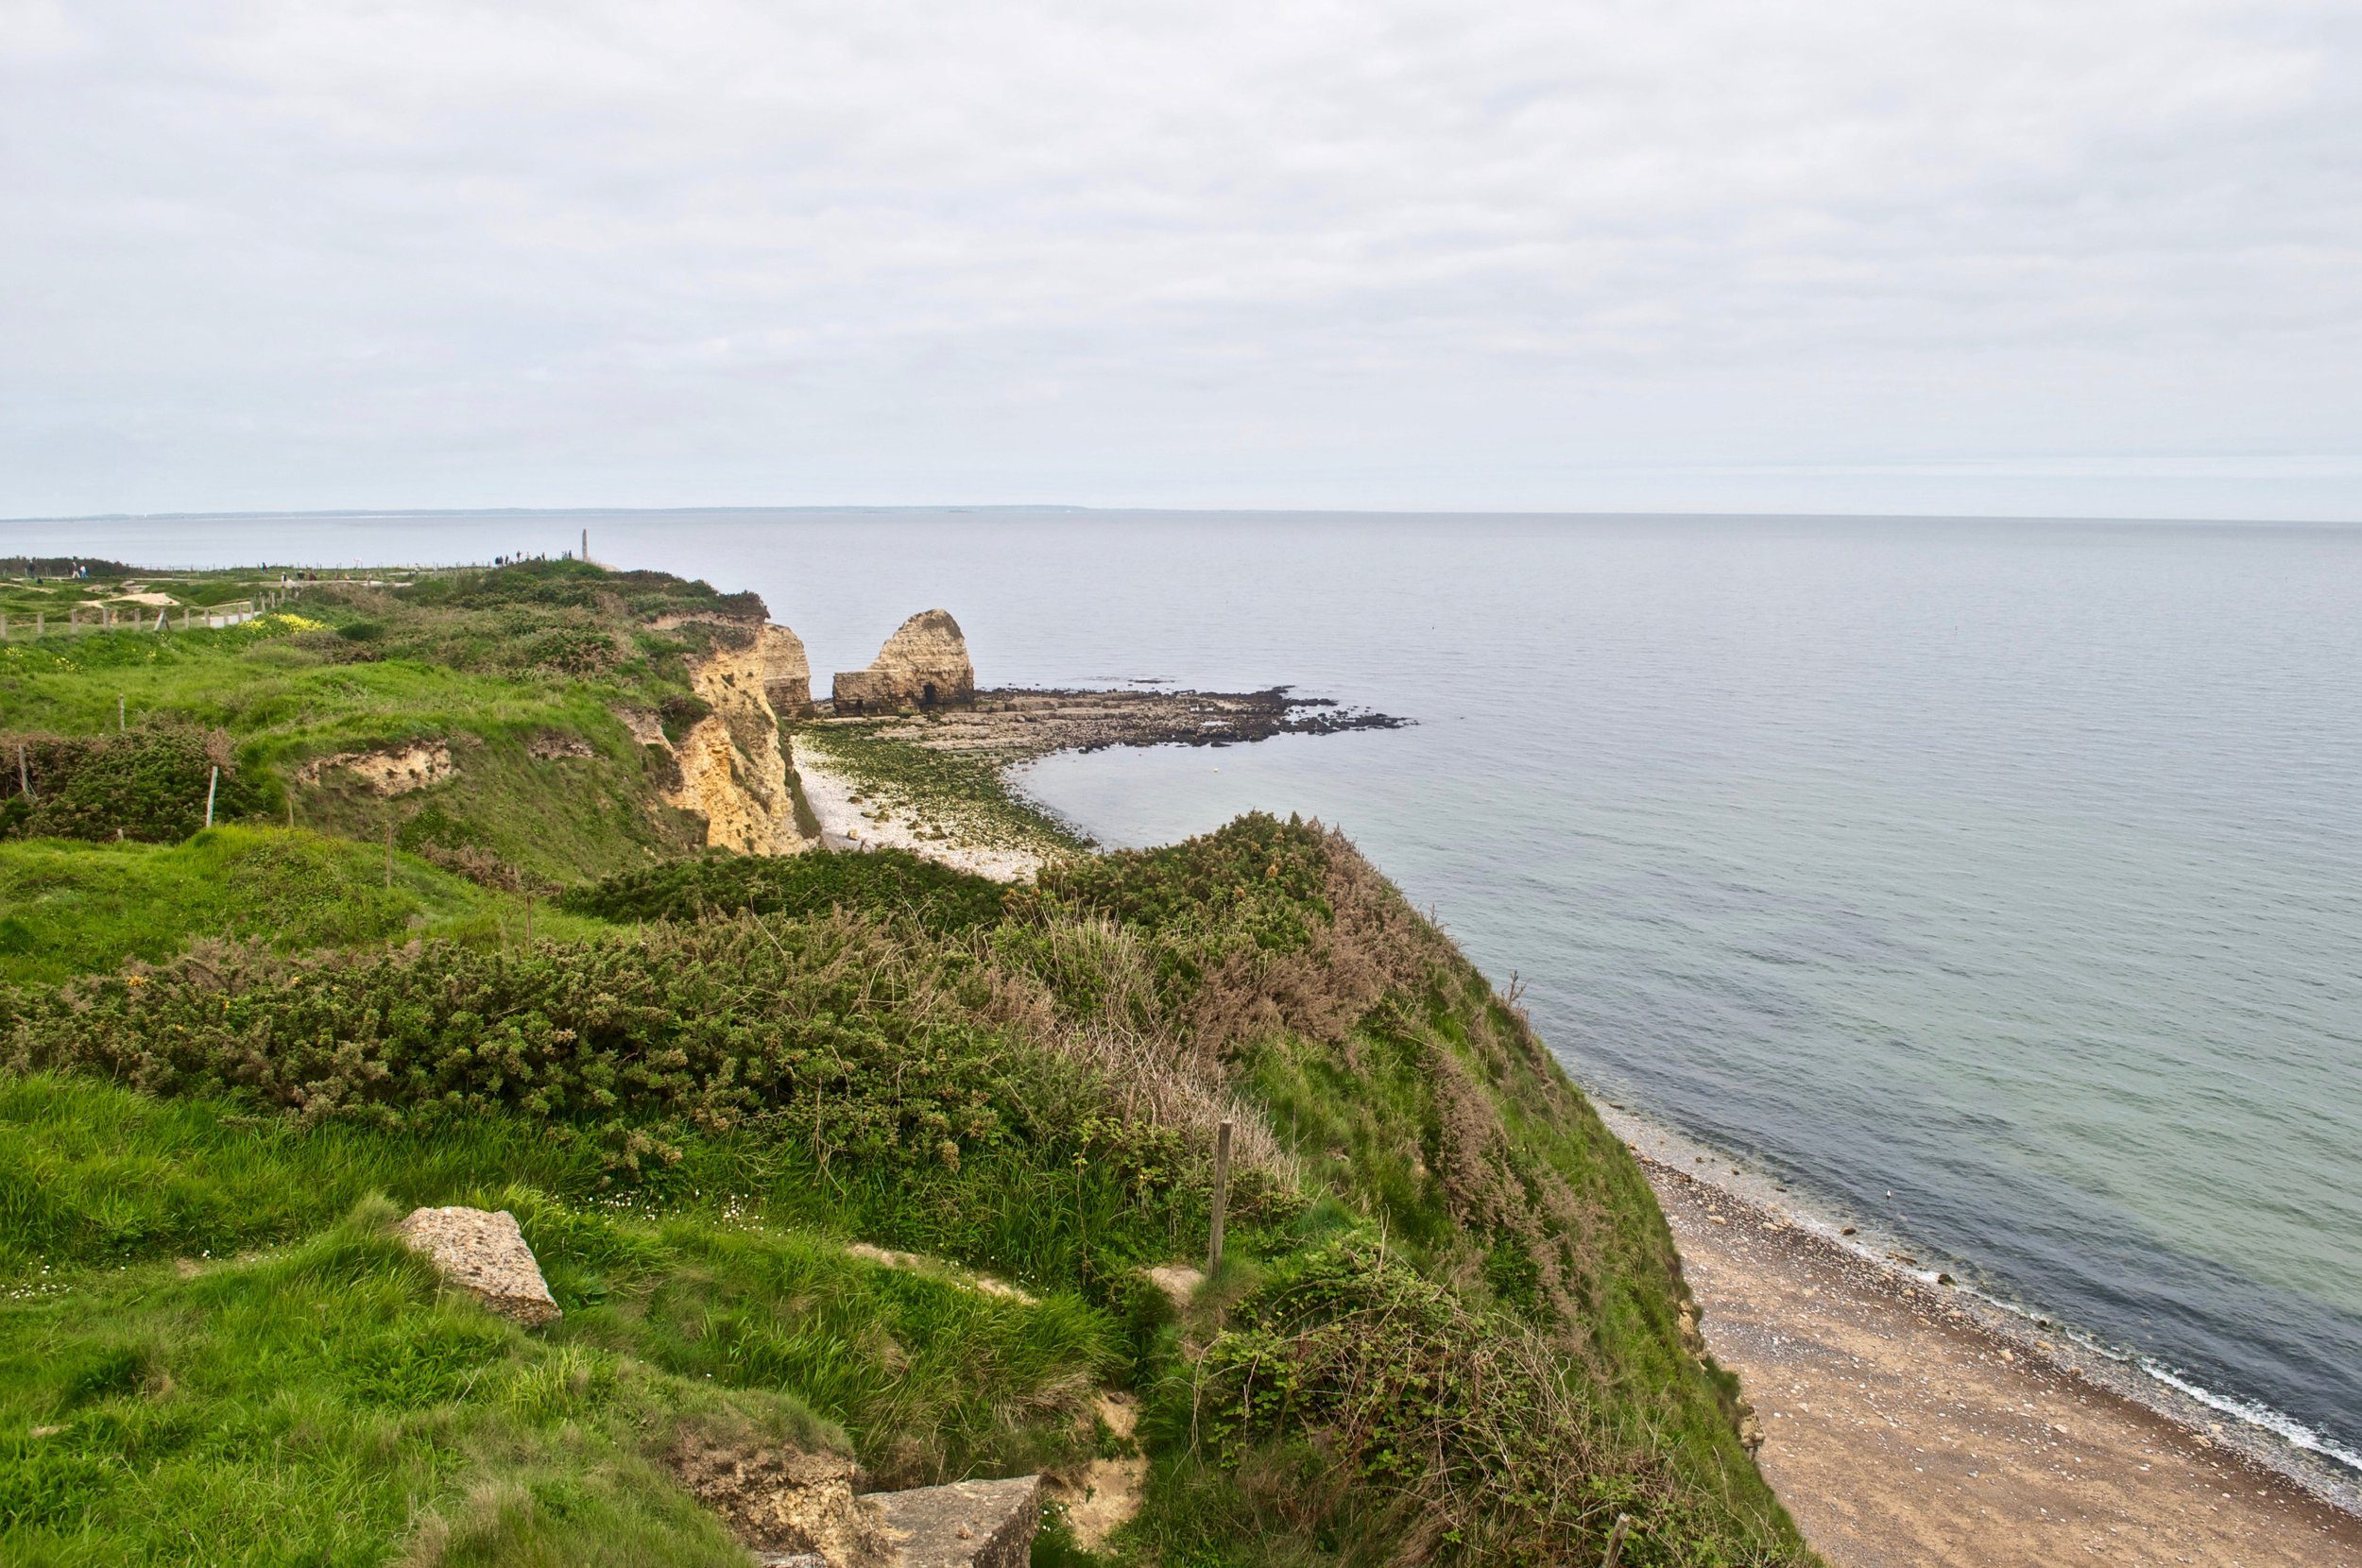 Pointe Du Hoc, Normandy, France - The Ultimate Northern France Itinerary